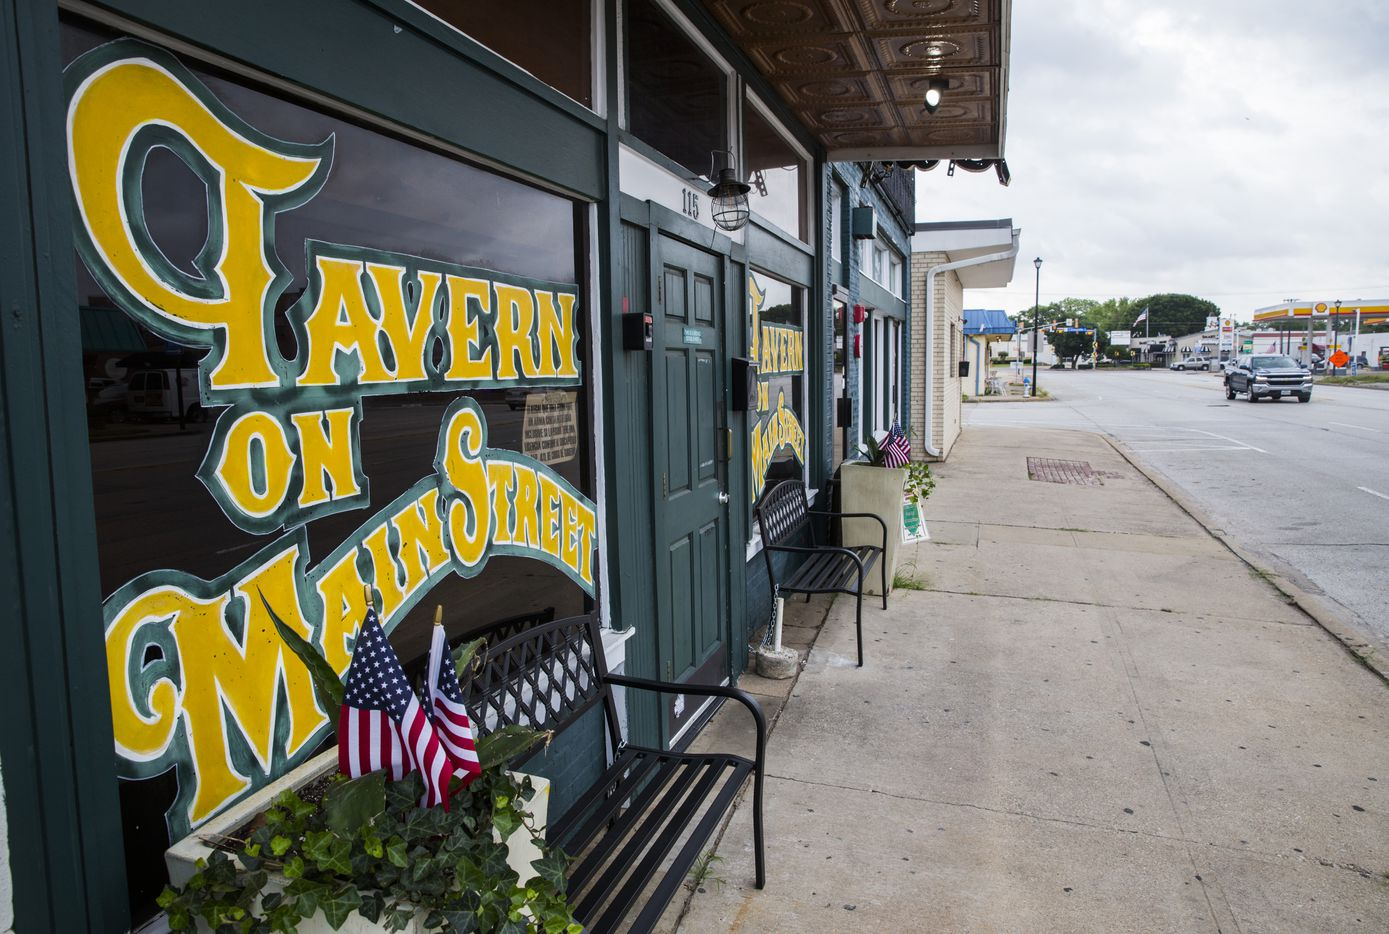 Tavern on Main Street is seen on 100 block of East Main Street in old downtown Richardson, an area set for redevelopment.